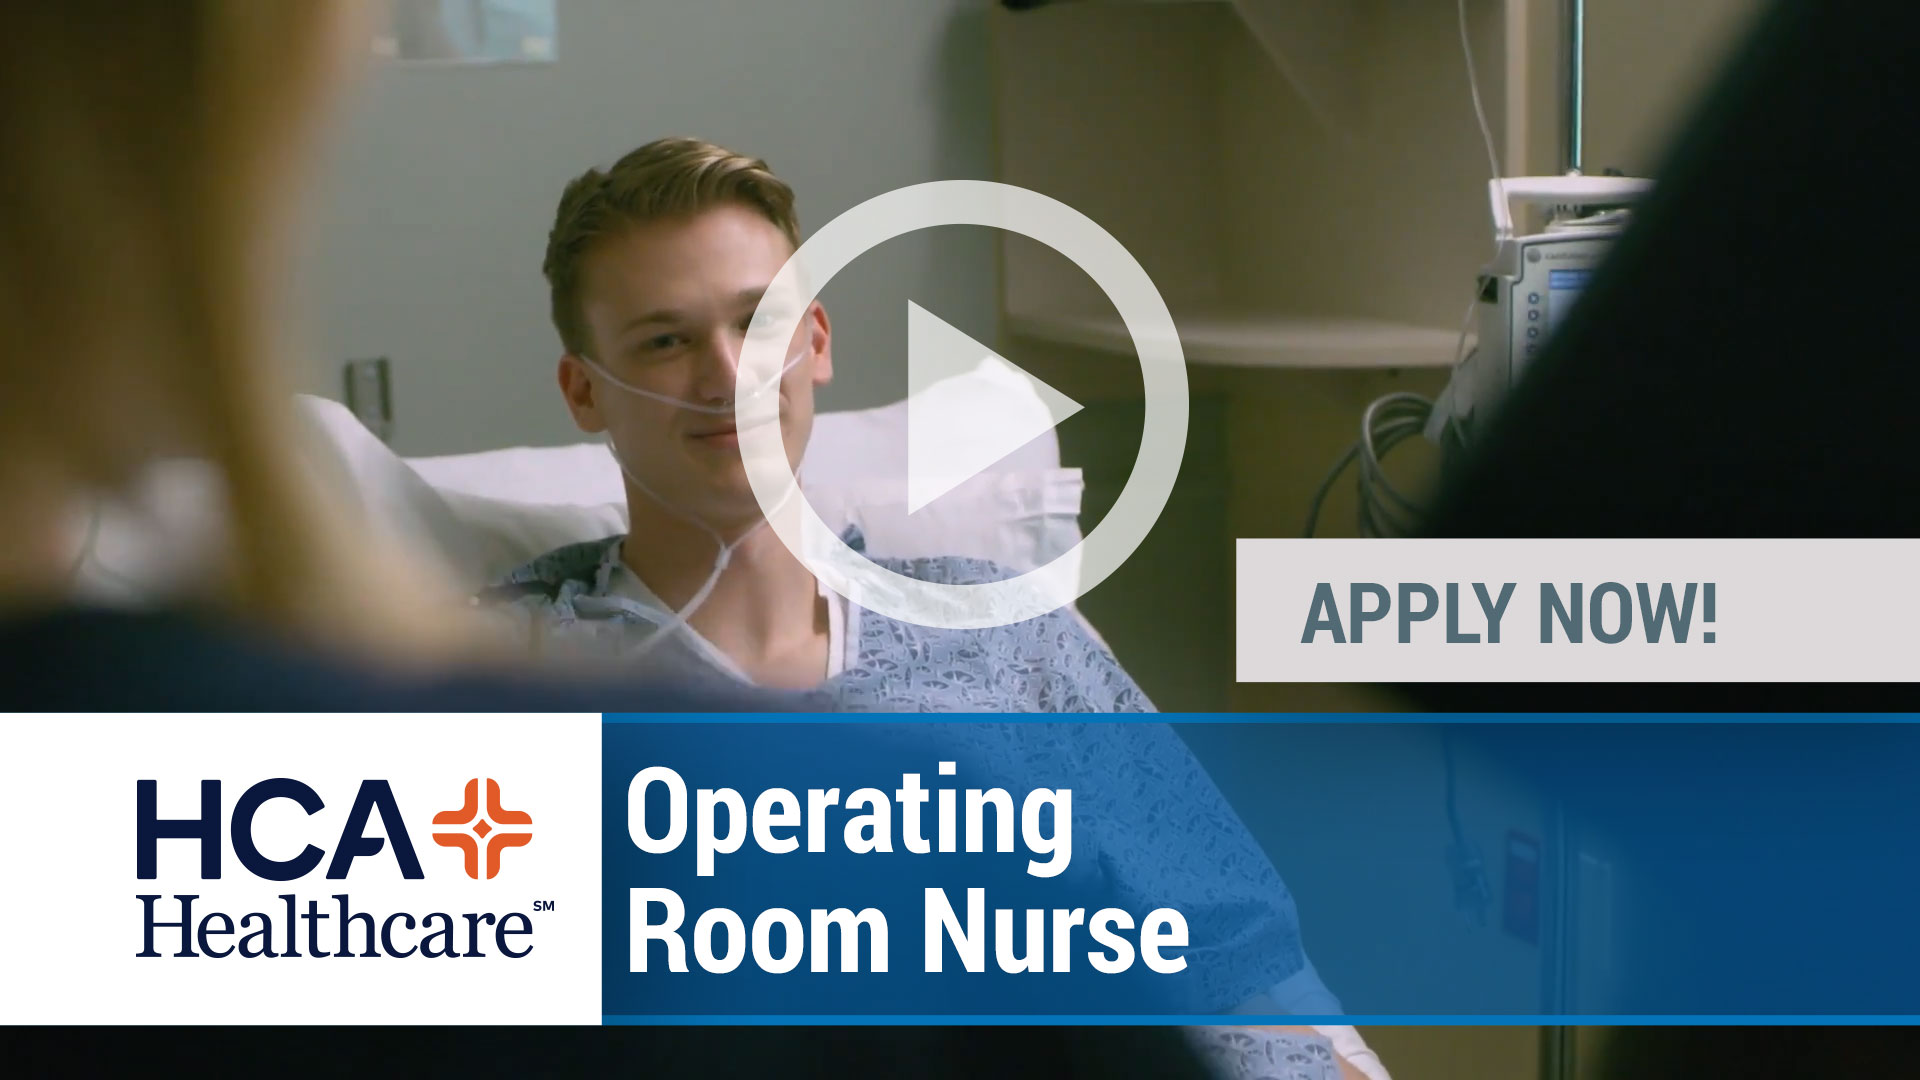 Watch our careers video for available job opening Operating Room Nurse in Salem, Virginia